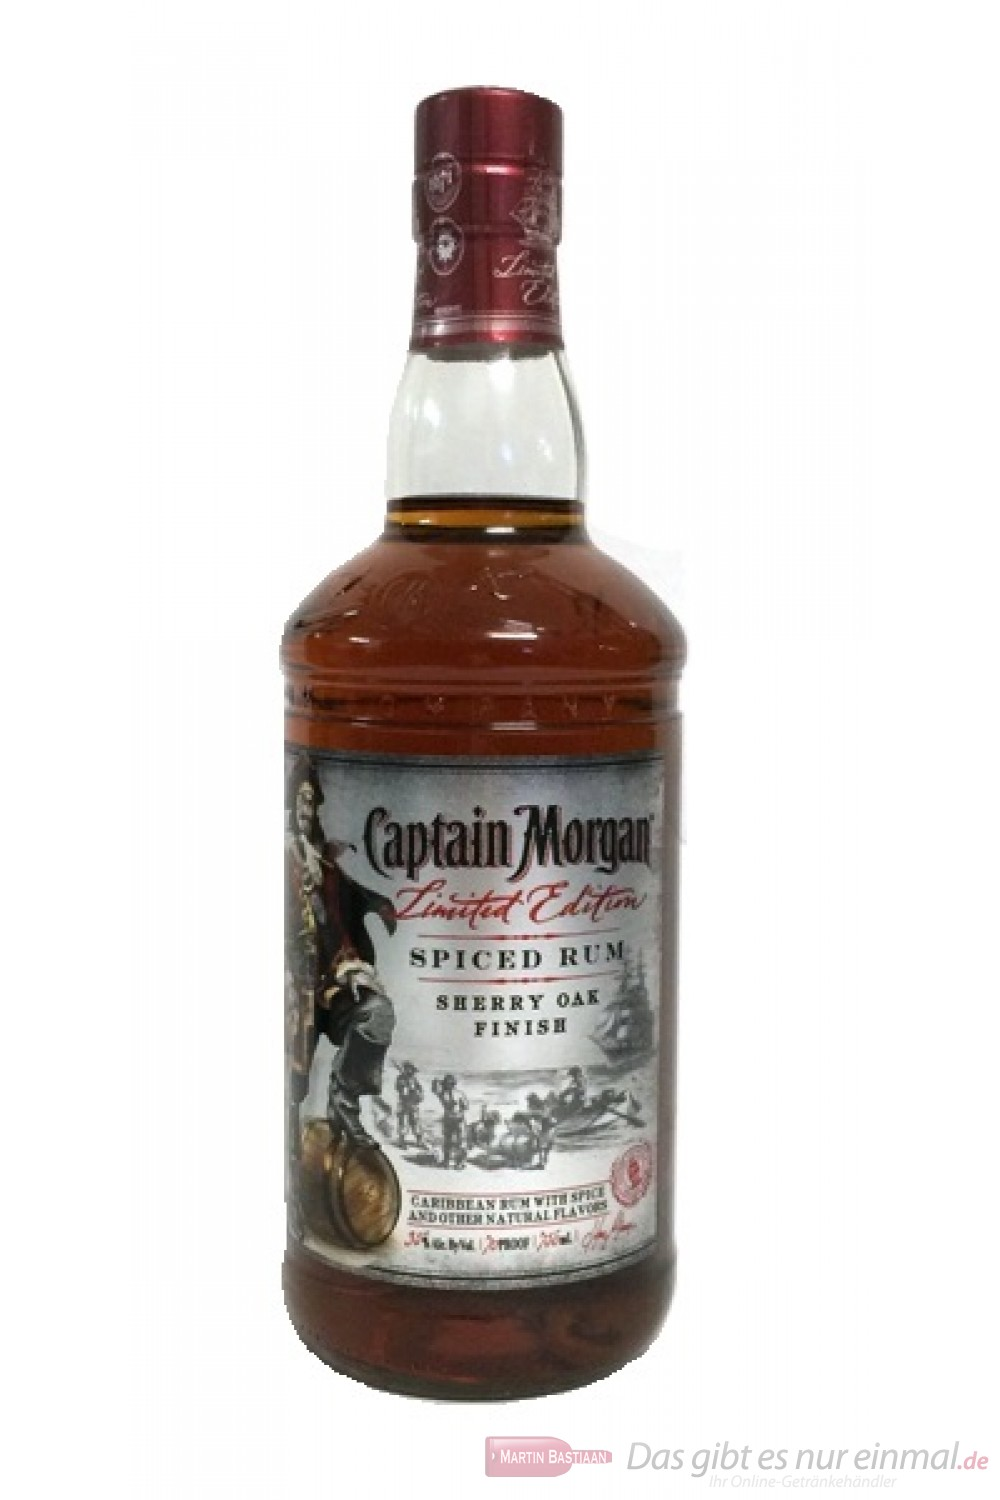 Captain Morgan Sherry Oak Finish